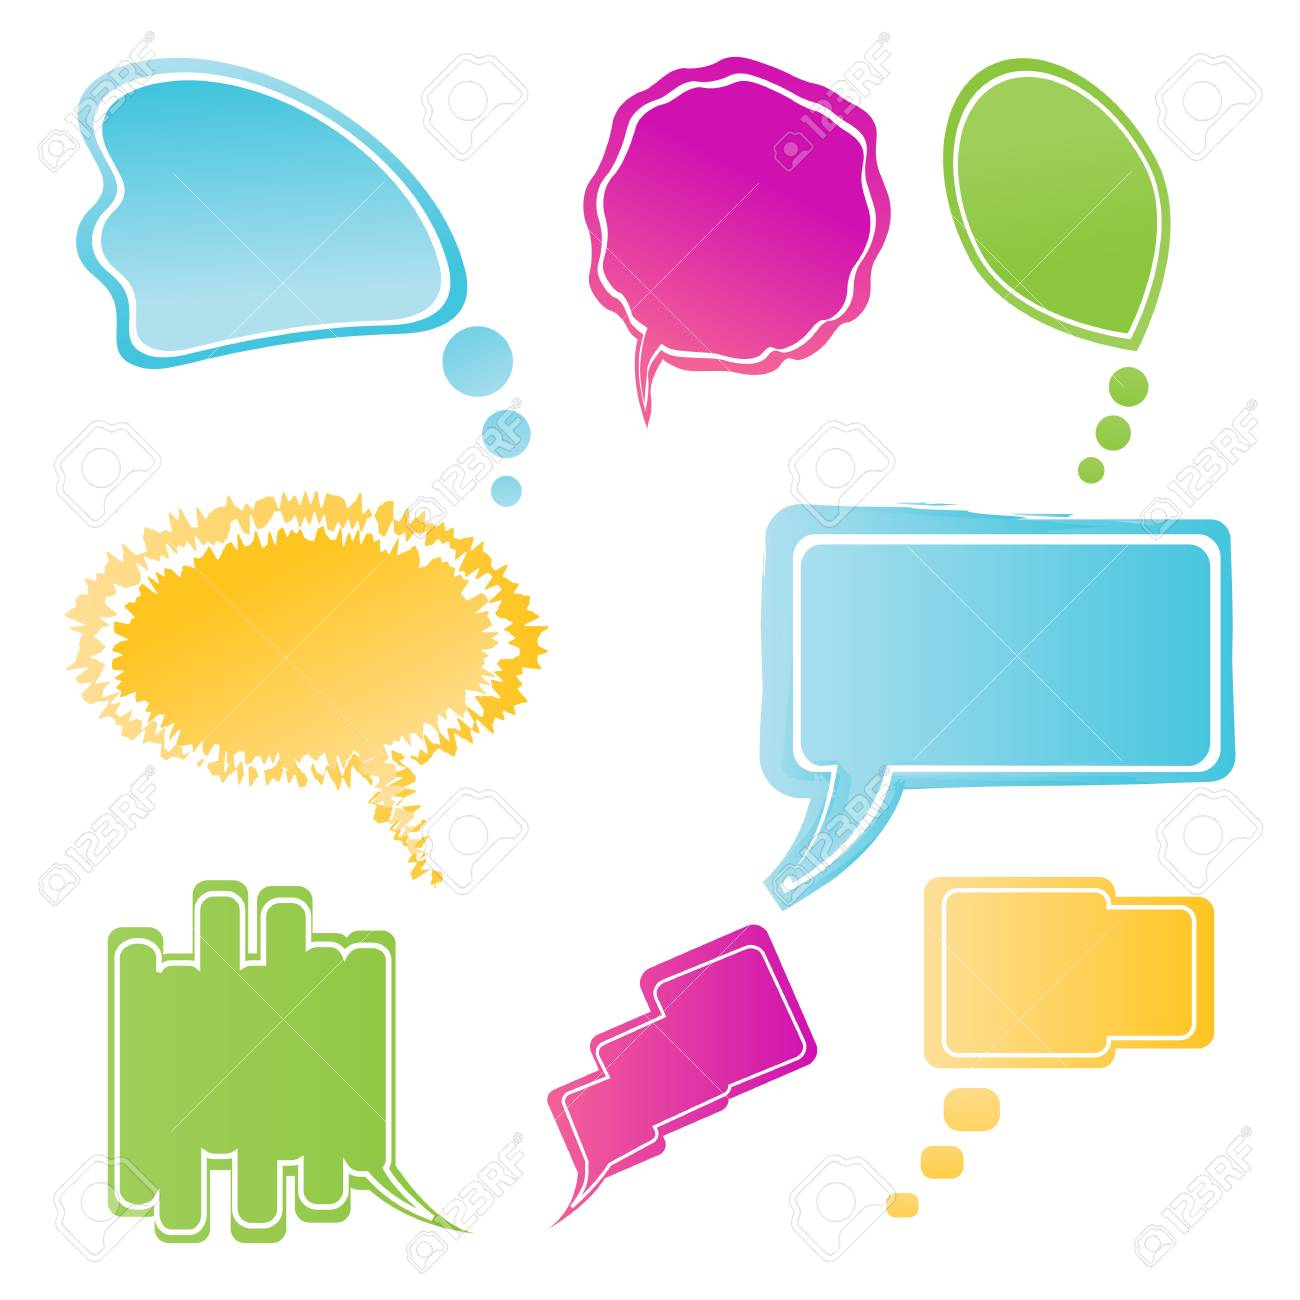 illustration of set of colorful speech bubbles Stock Photo - 8112647